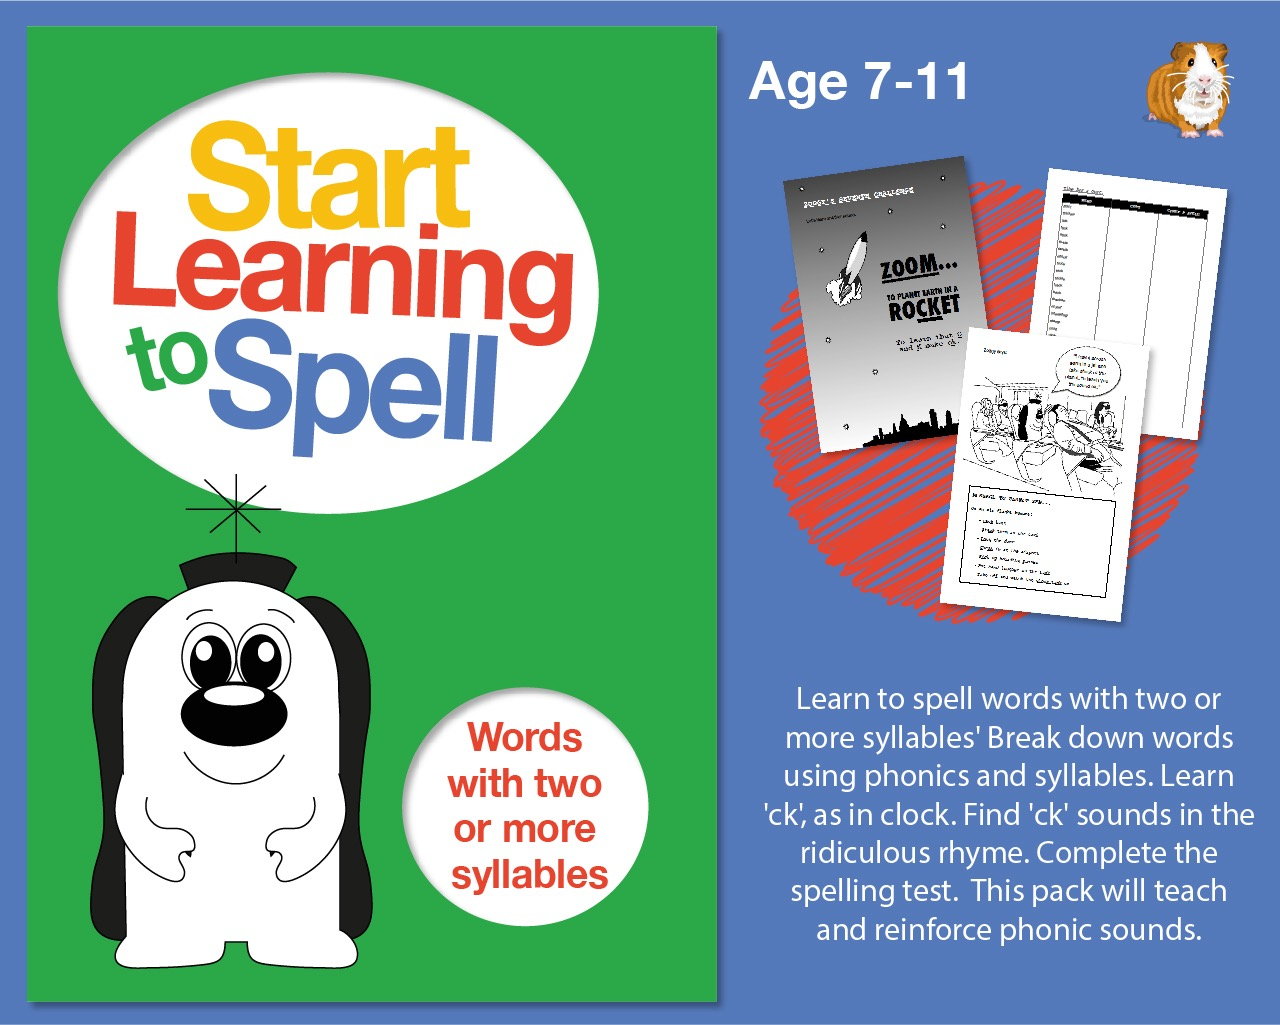 Learn To Spell Words With 2 Or More Syllables: Learn To Spell With Phonics (7-11)